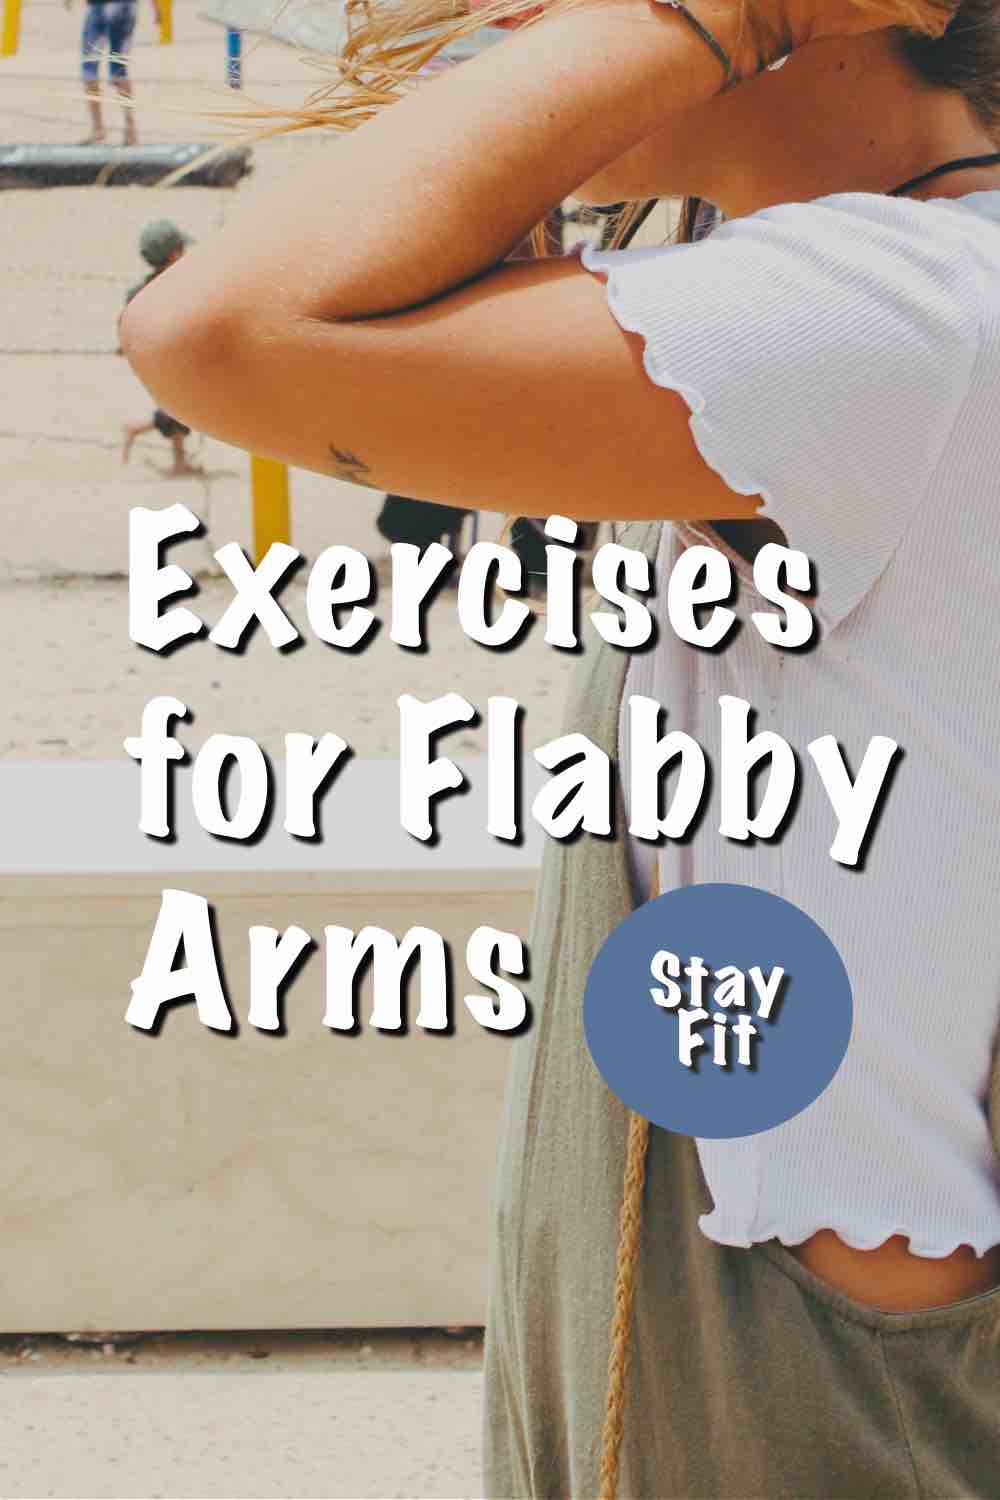 A woman doing exercises for Flabby Arms